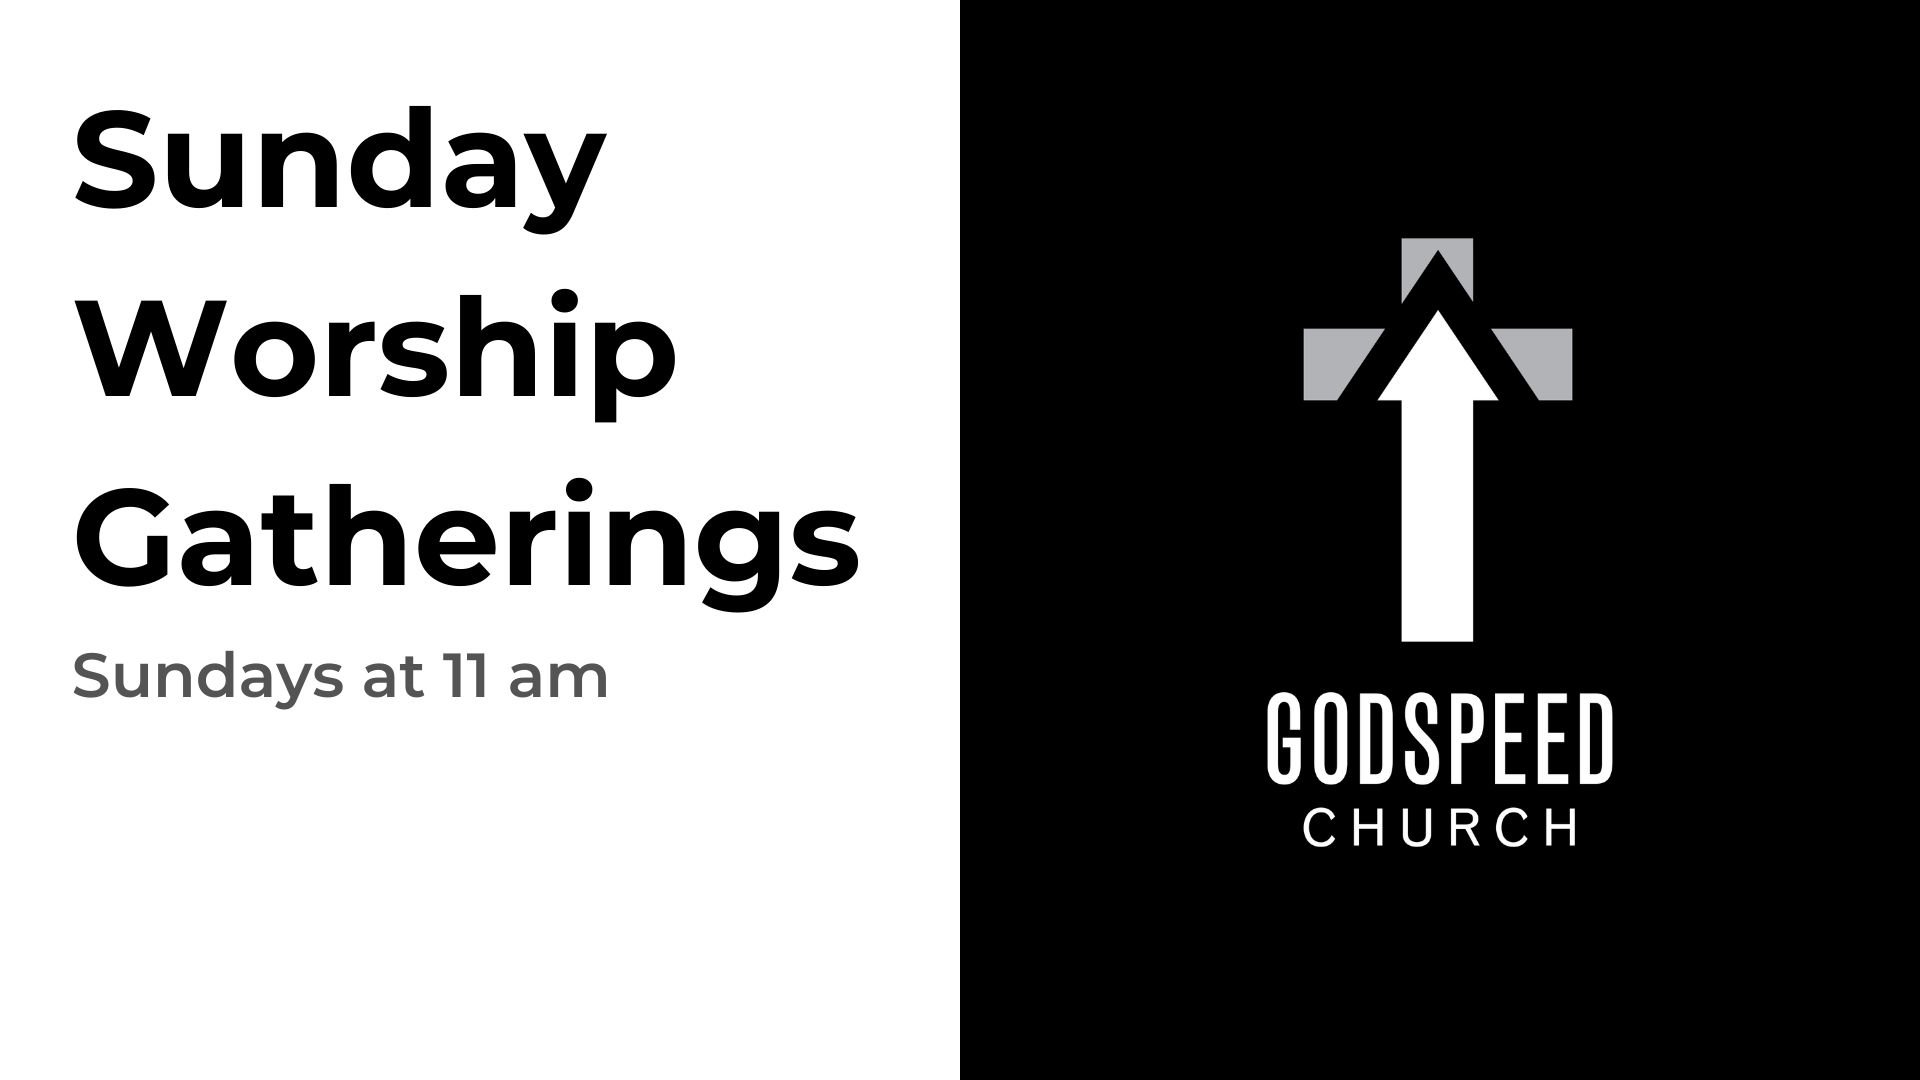 Sunday Worship Gatherings 11am-2 image